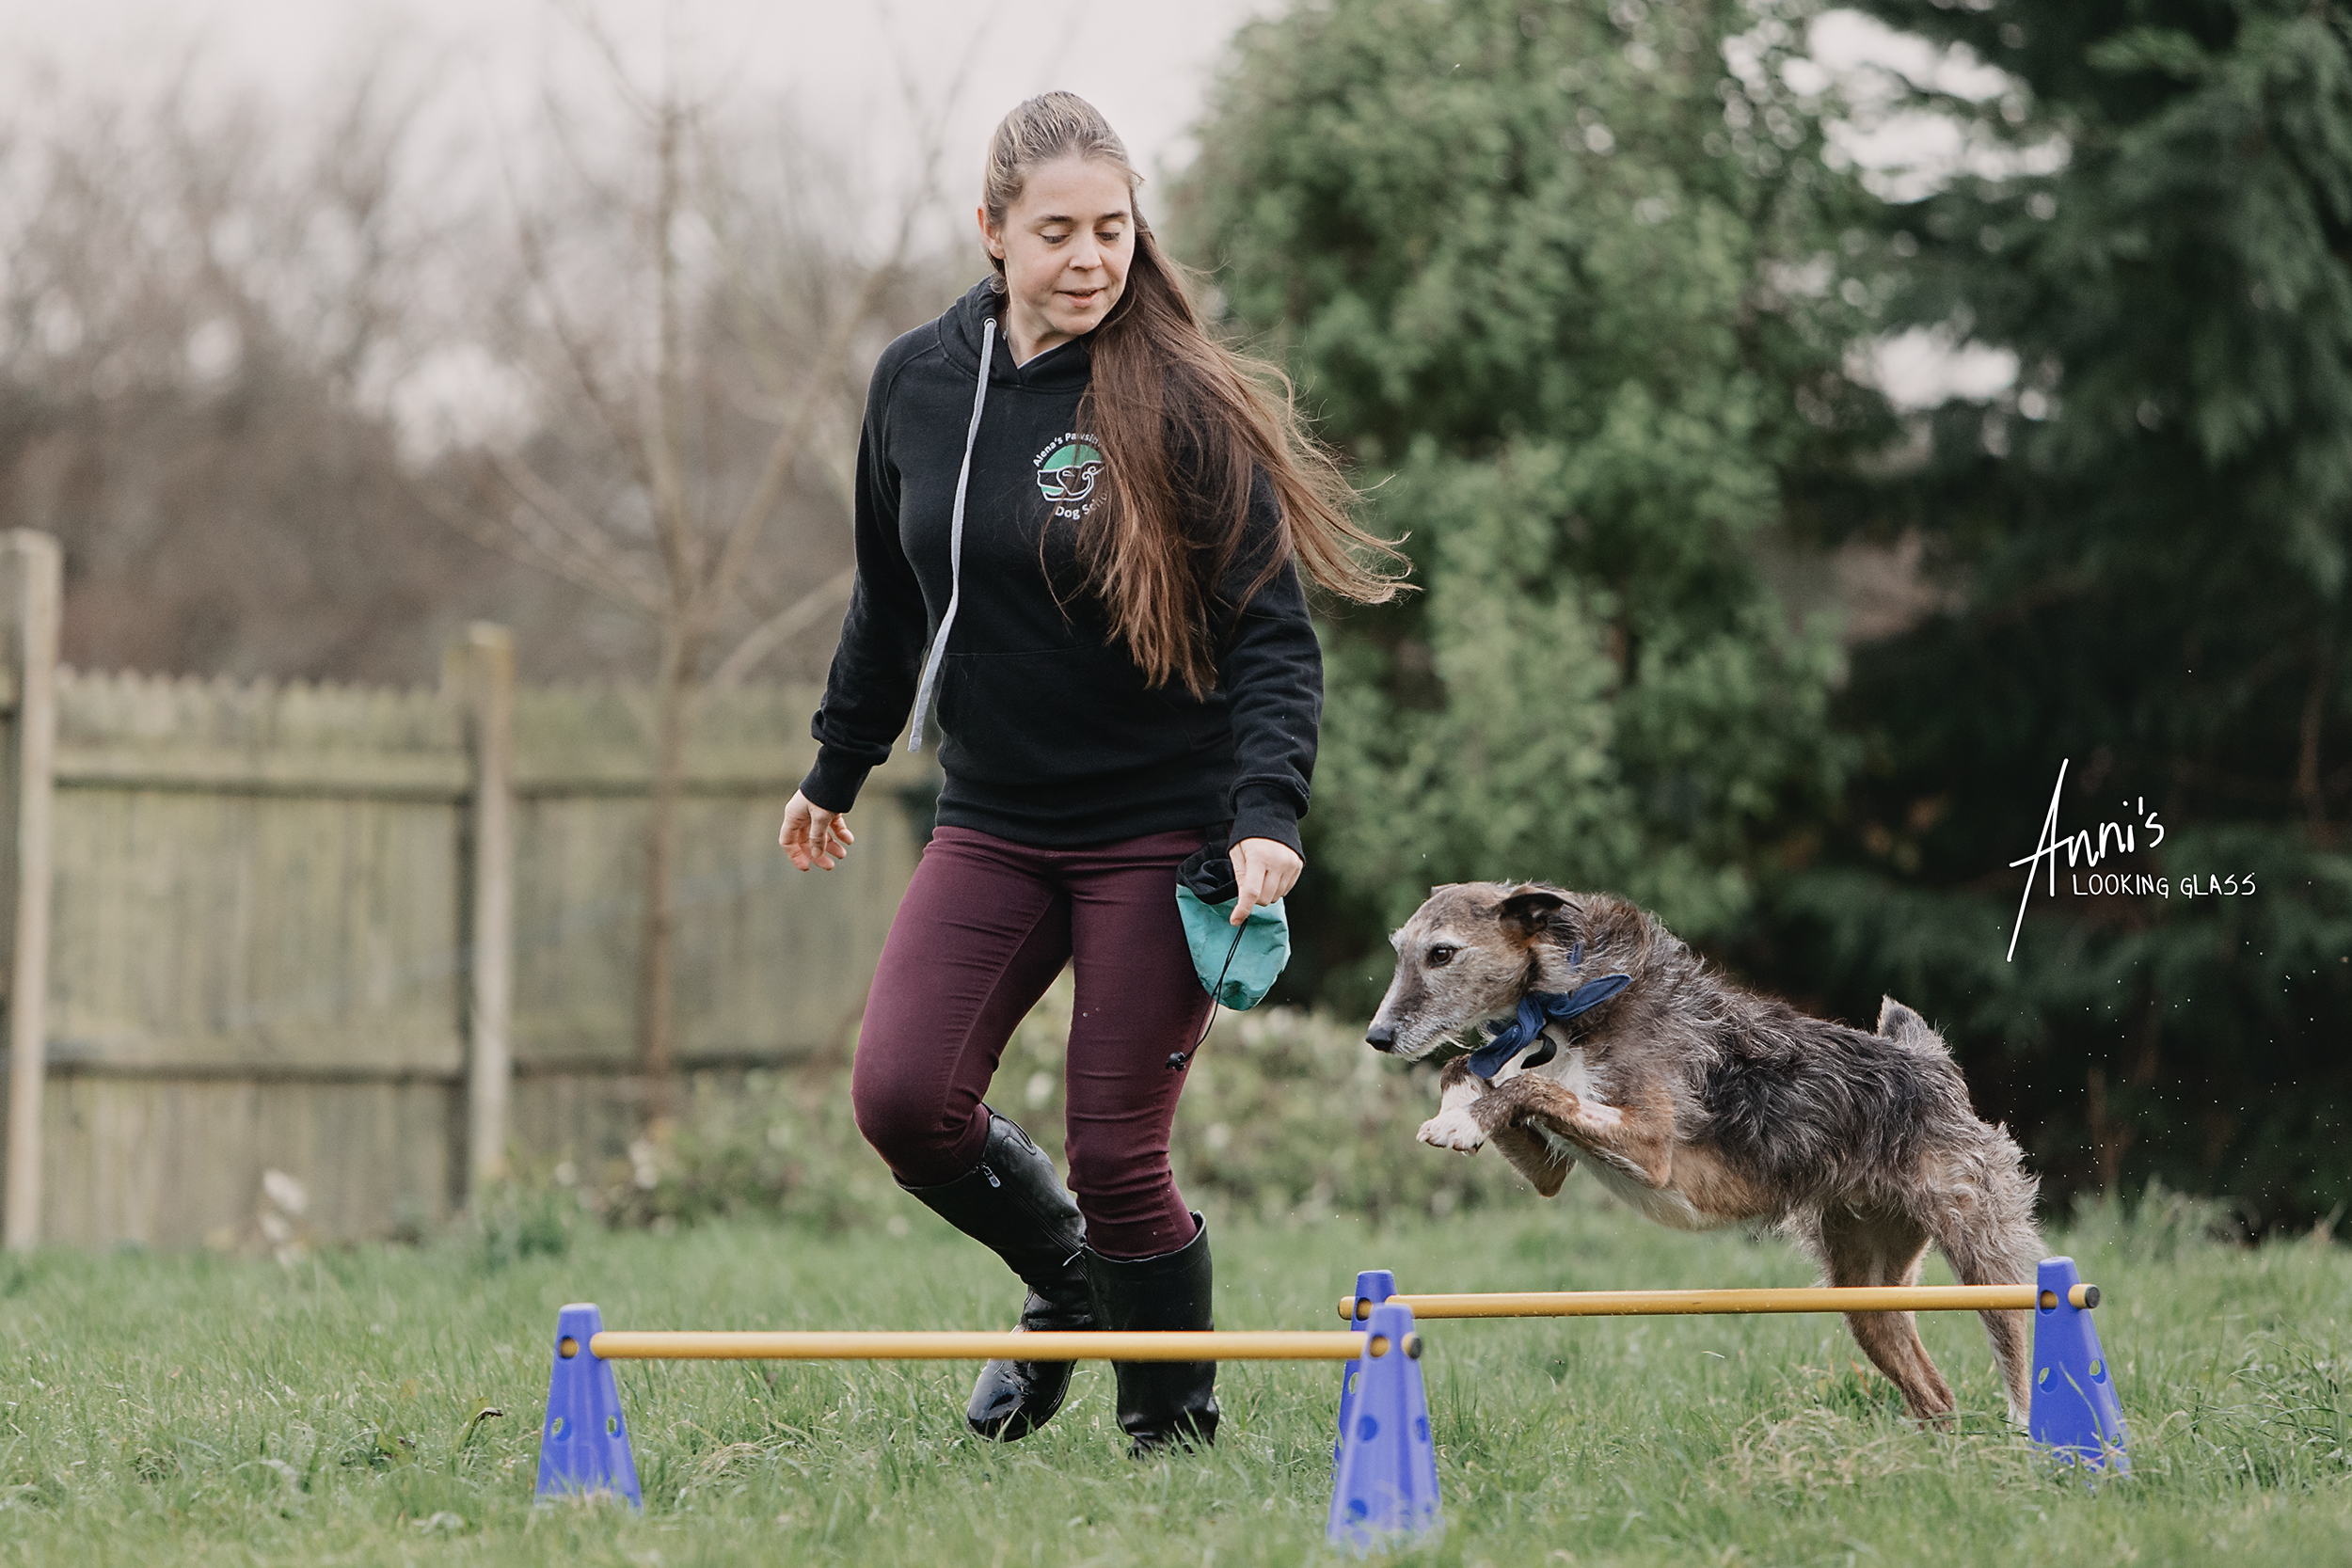 A young woman wearing a sweater branded with Alena's Pawsitive Dog School guides a greyhound across agility jumps